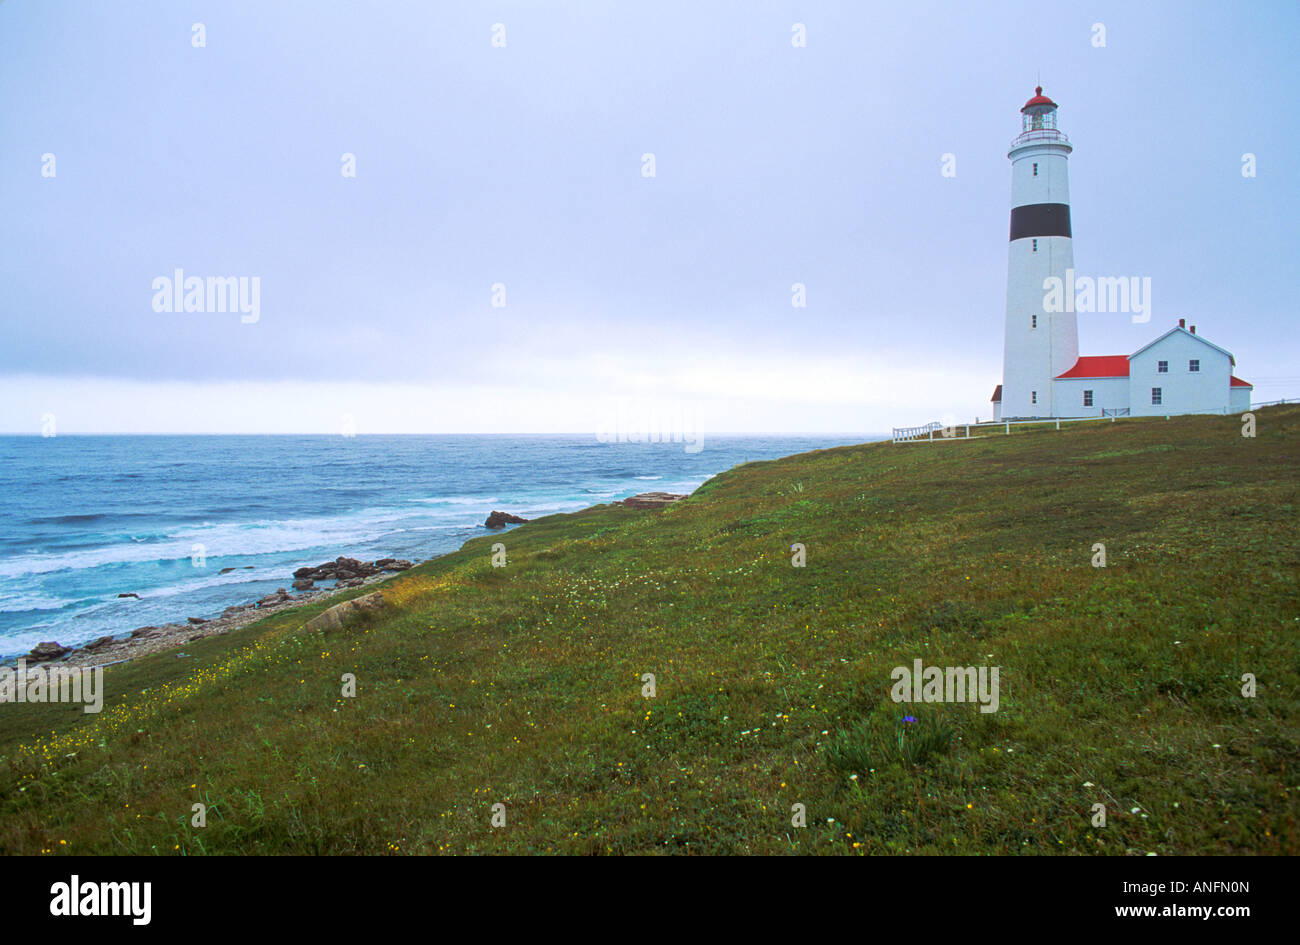 Point Amour Lighthouse, Newfoundland and Labrador, Canada. - Stock Image